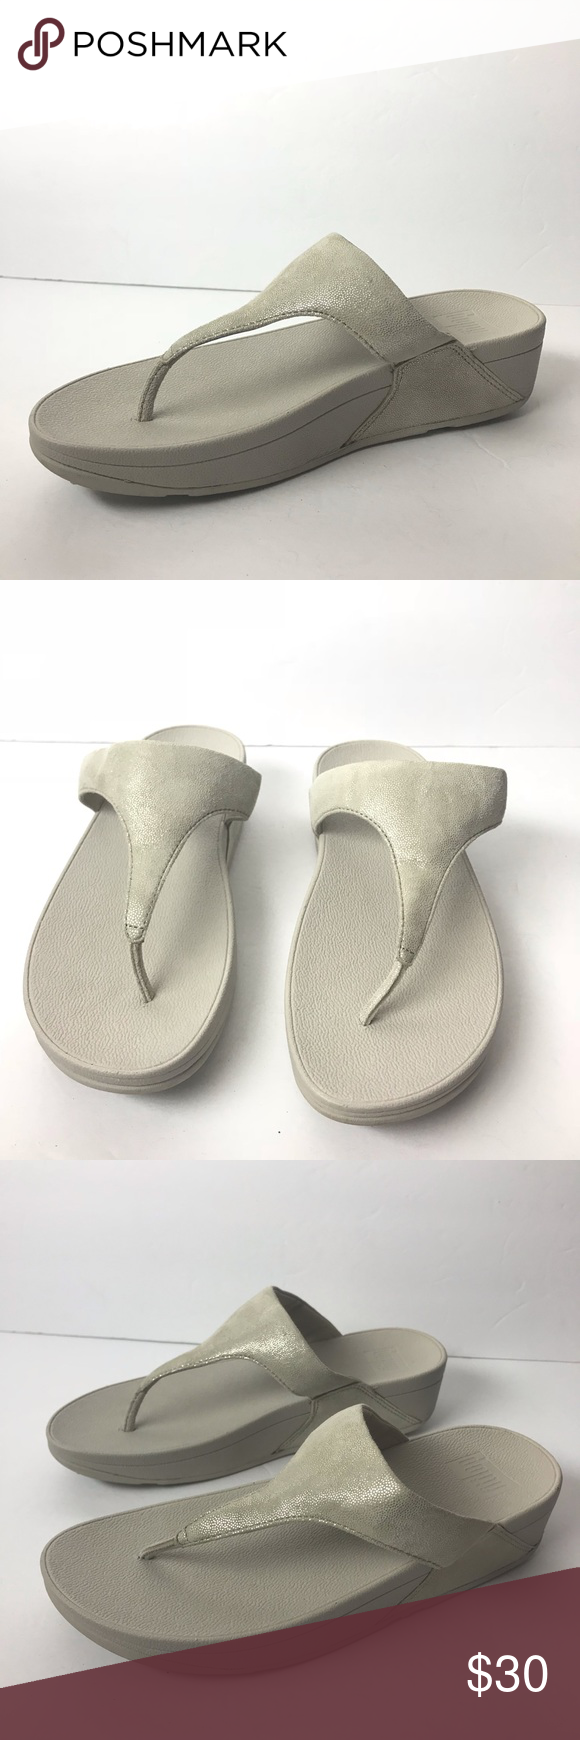 dd28a9243d9 Fitflop pale gold shimmy suede toe post sandals 8 Fitflop women s thong  flip flop sandals Pale gold shimmy suede toe post Women s size 8 Gently  used ...